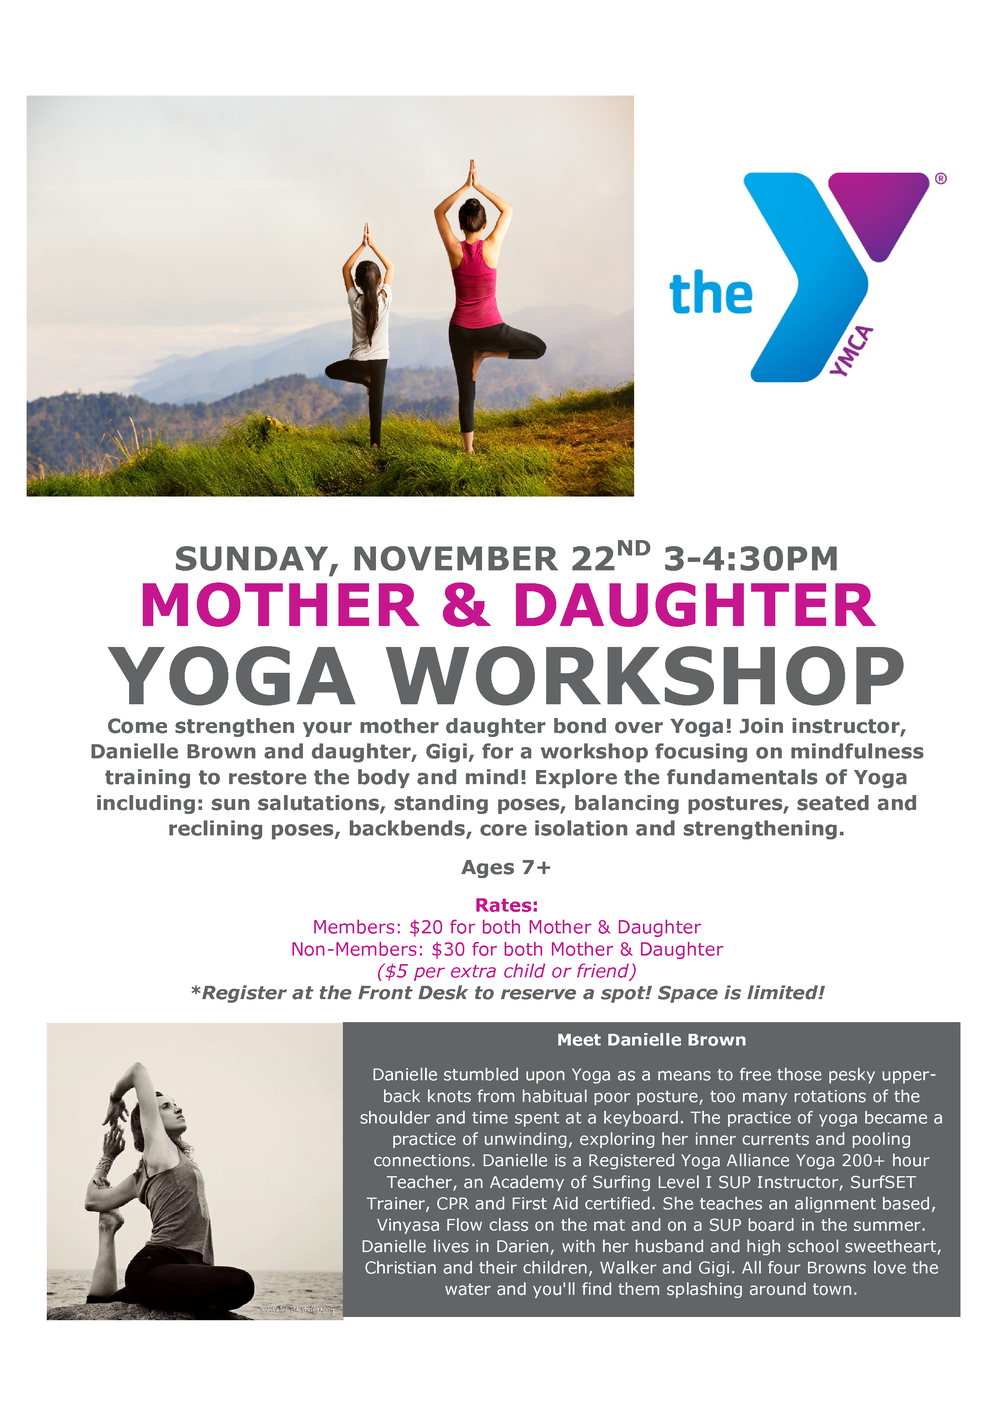 girls-moms-yoga-danielle-brown-ymca